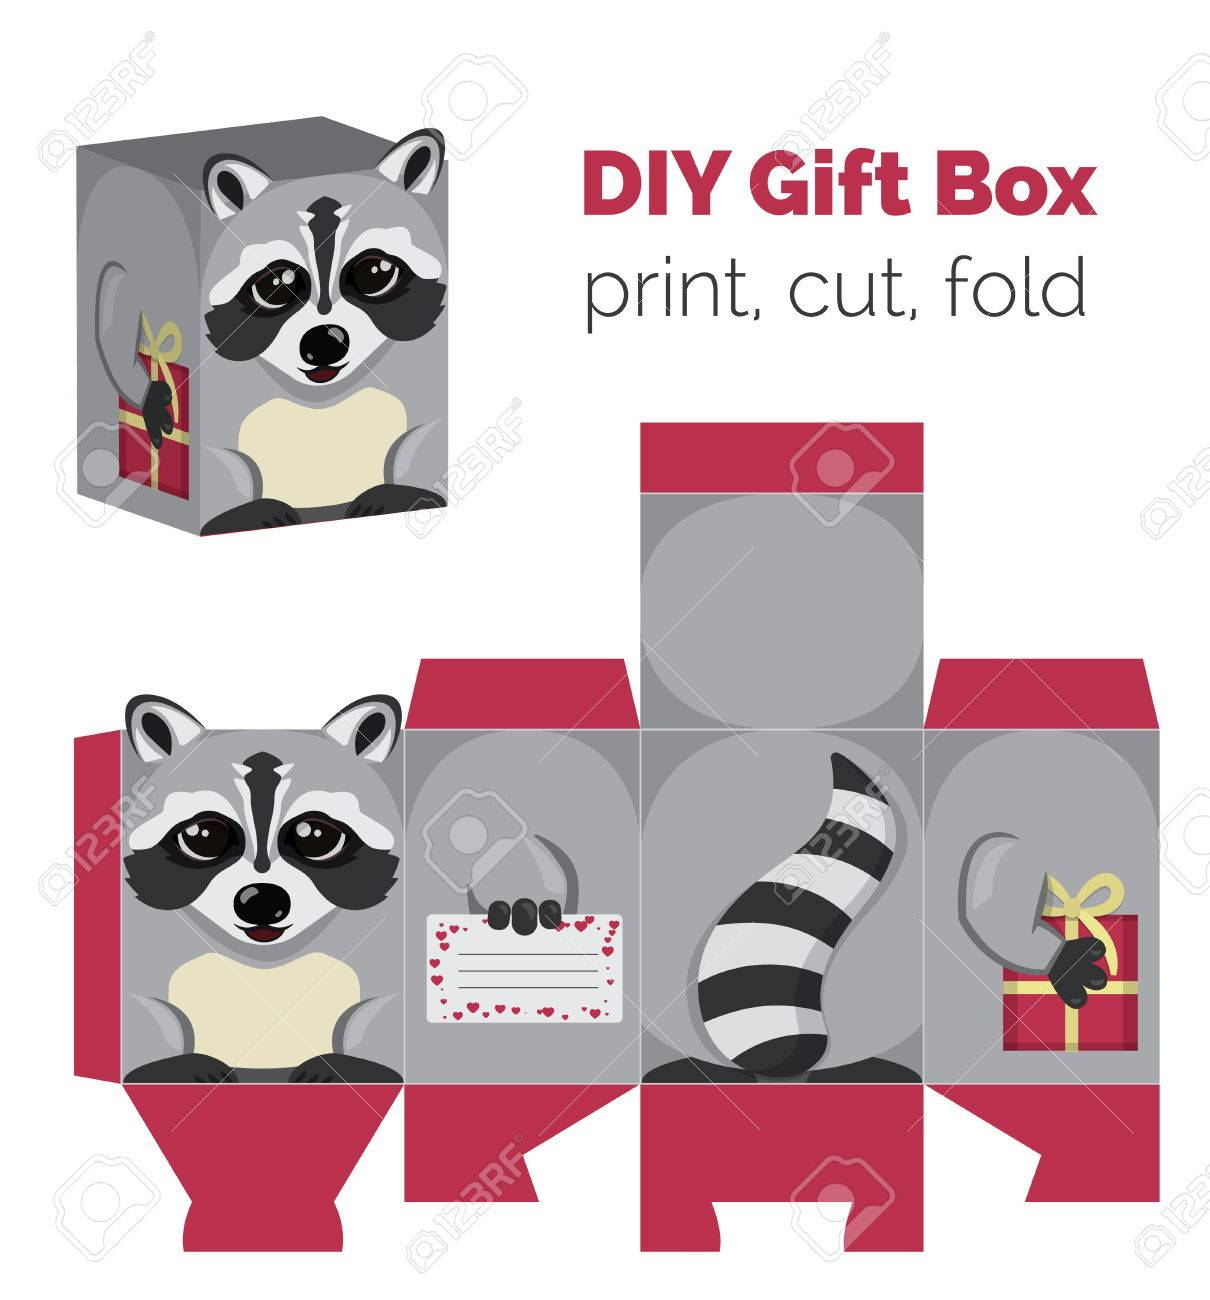 Adorable Do It Yourself Raccoon Gift Box With Ears For Sweets